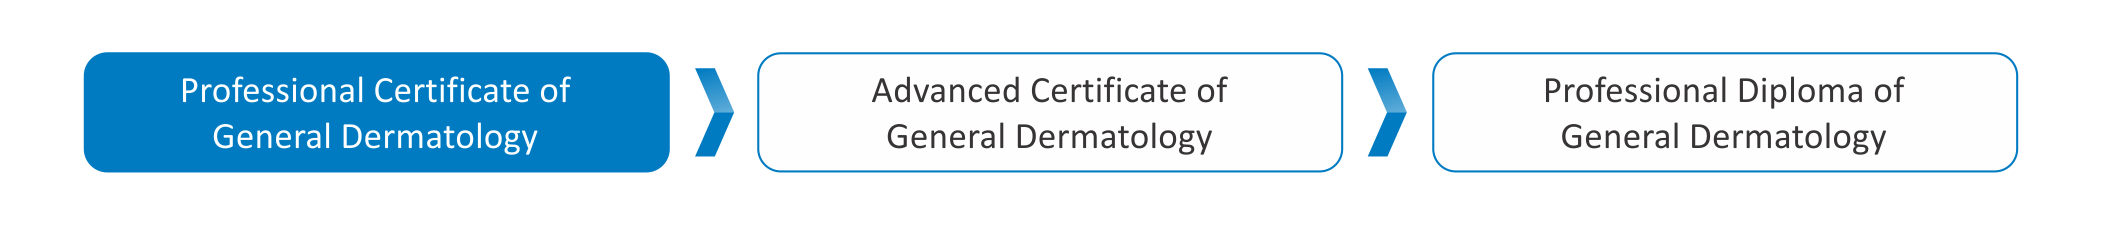 Professional Certificate of Dermatology.png